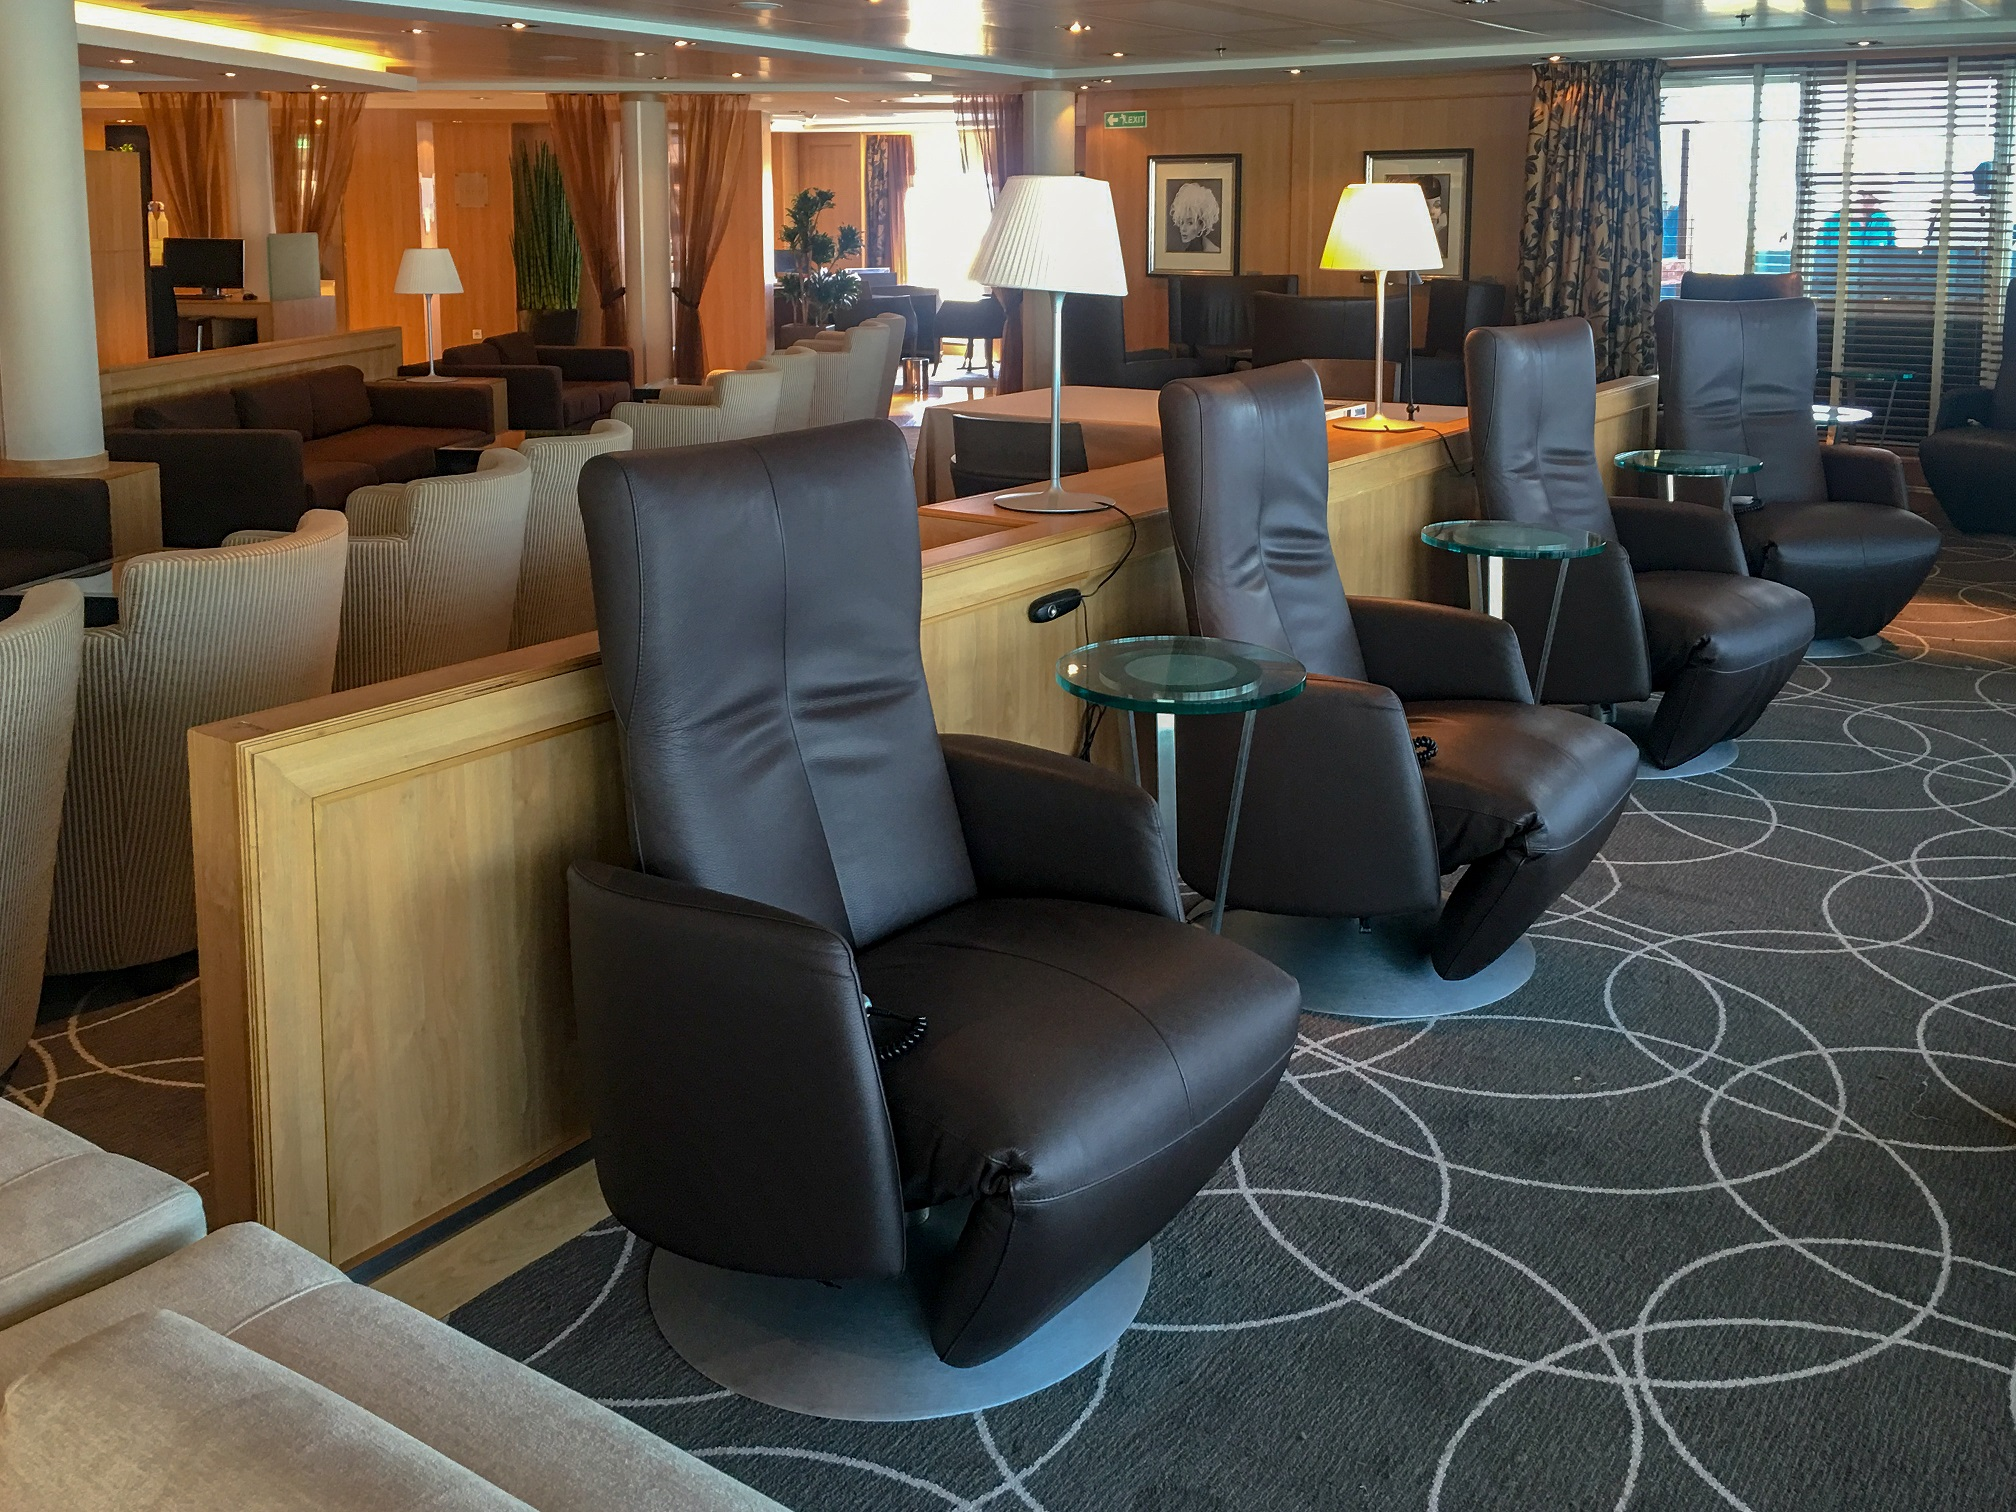 Trimline Cruise Trimline Completes Another Seabourn Extensive Refit In Six Days On Quest